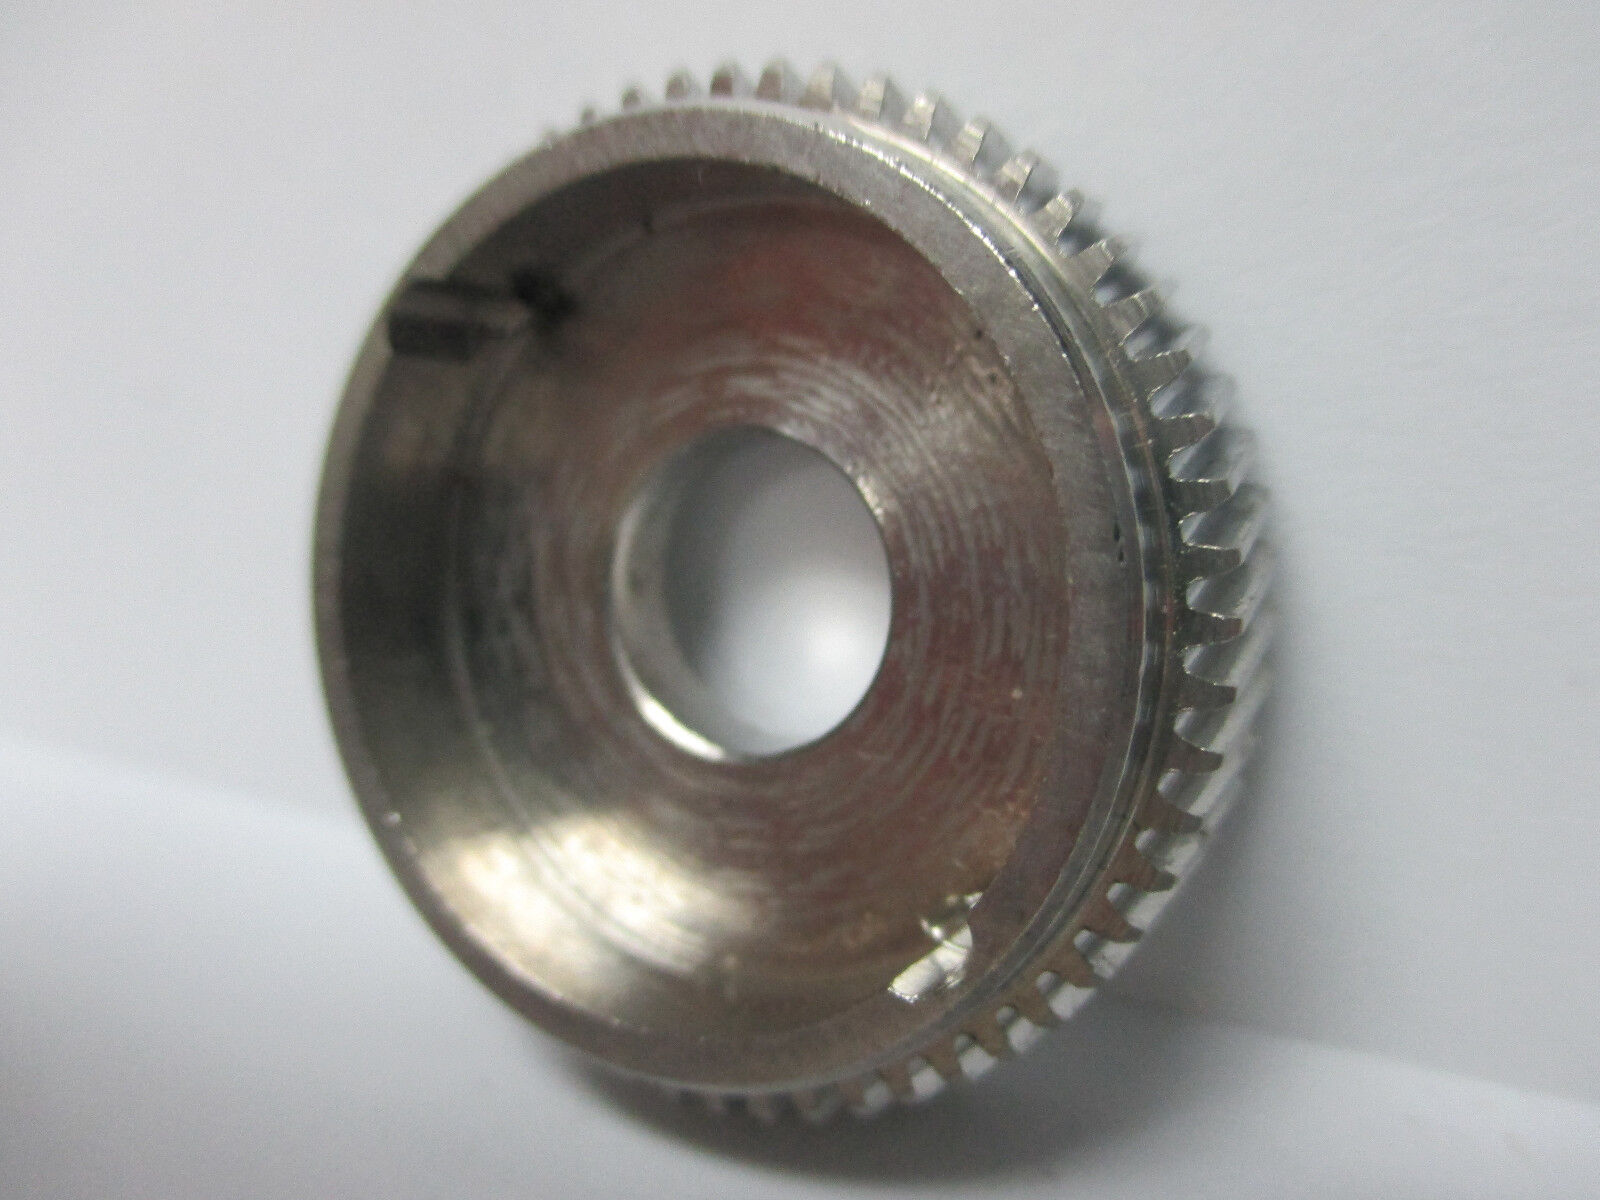 NEW NEWELL CONVENTIONAL REEL PART - G 322 F - Main Gear